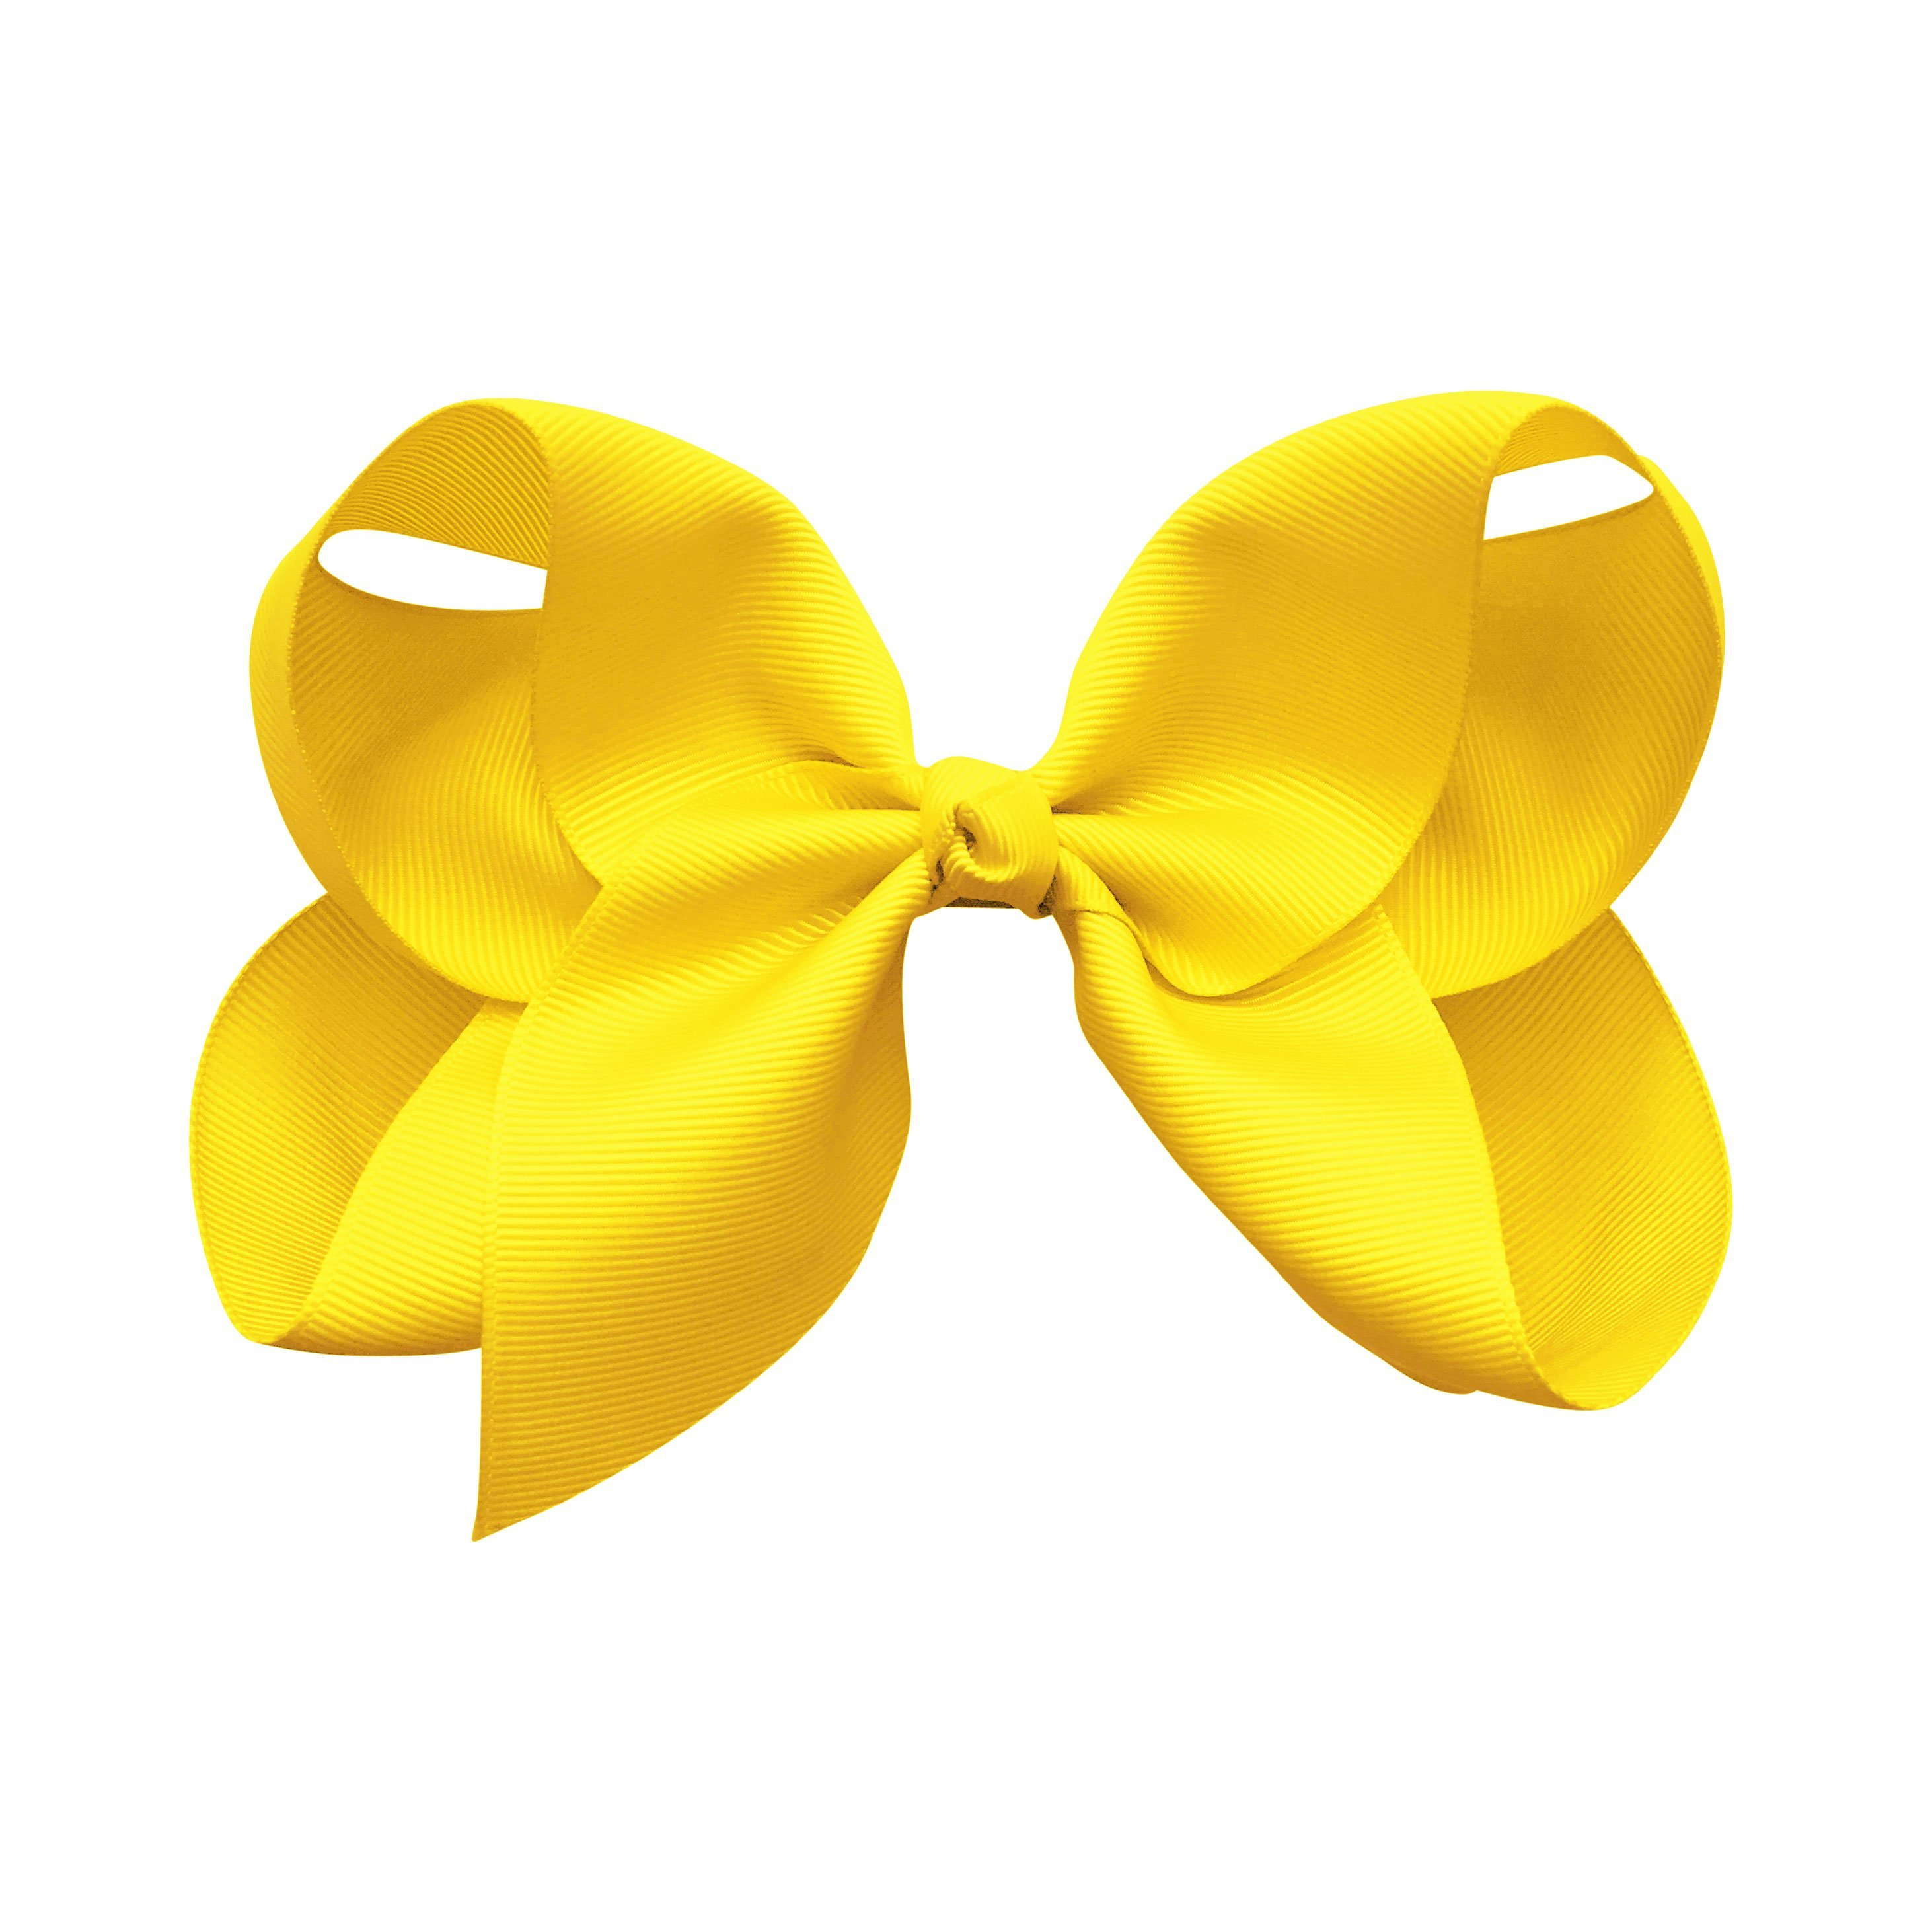 Image of Jumbo Boutique Bow - alligator clip - daffodil